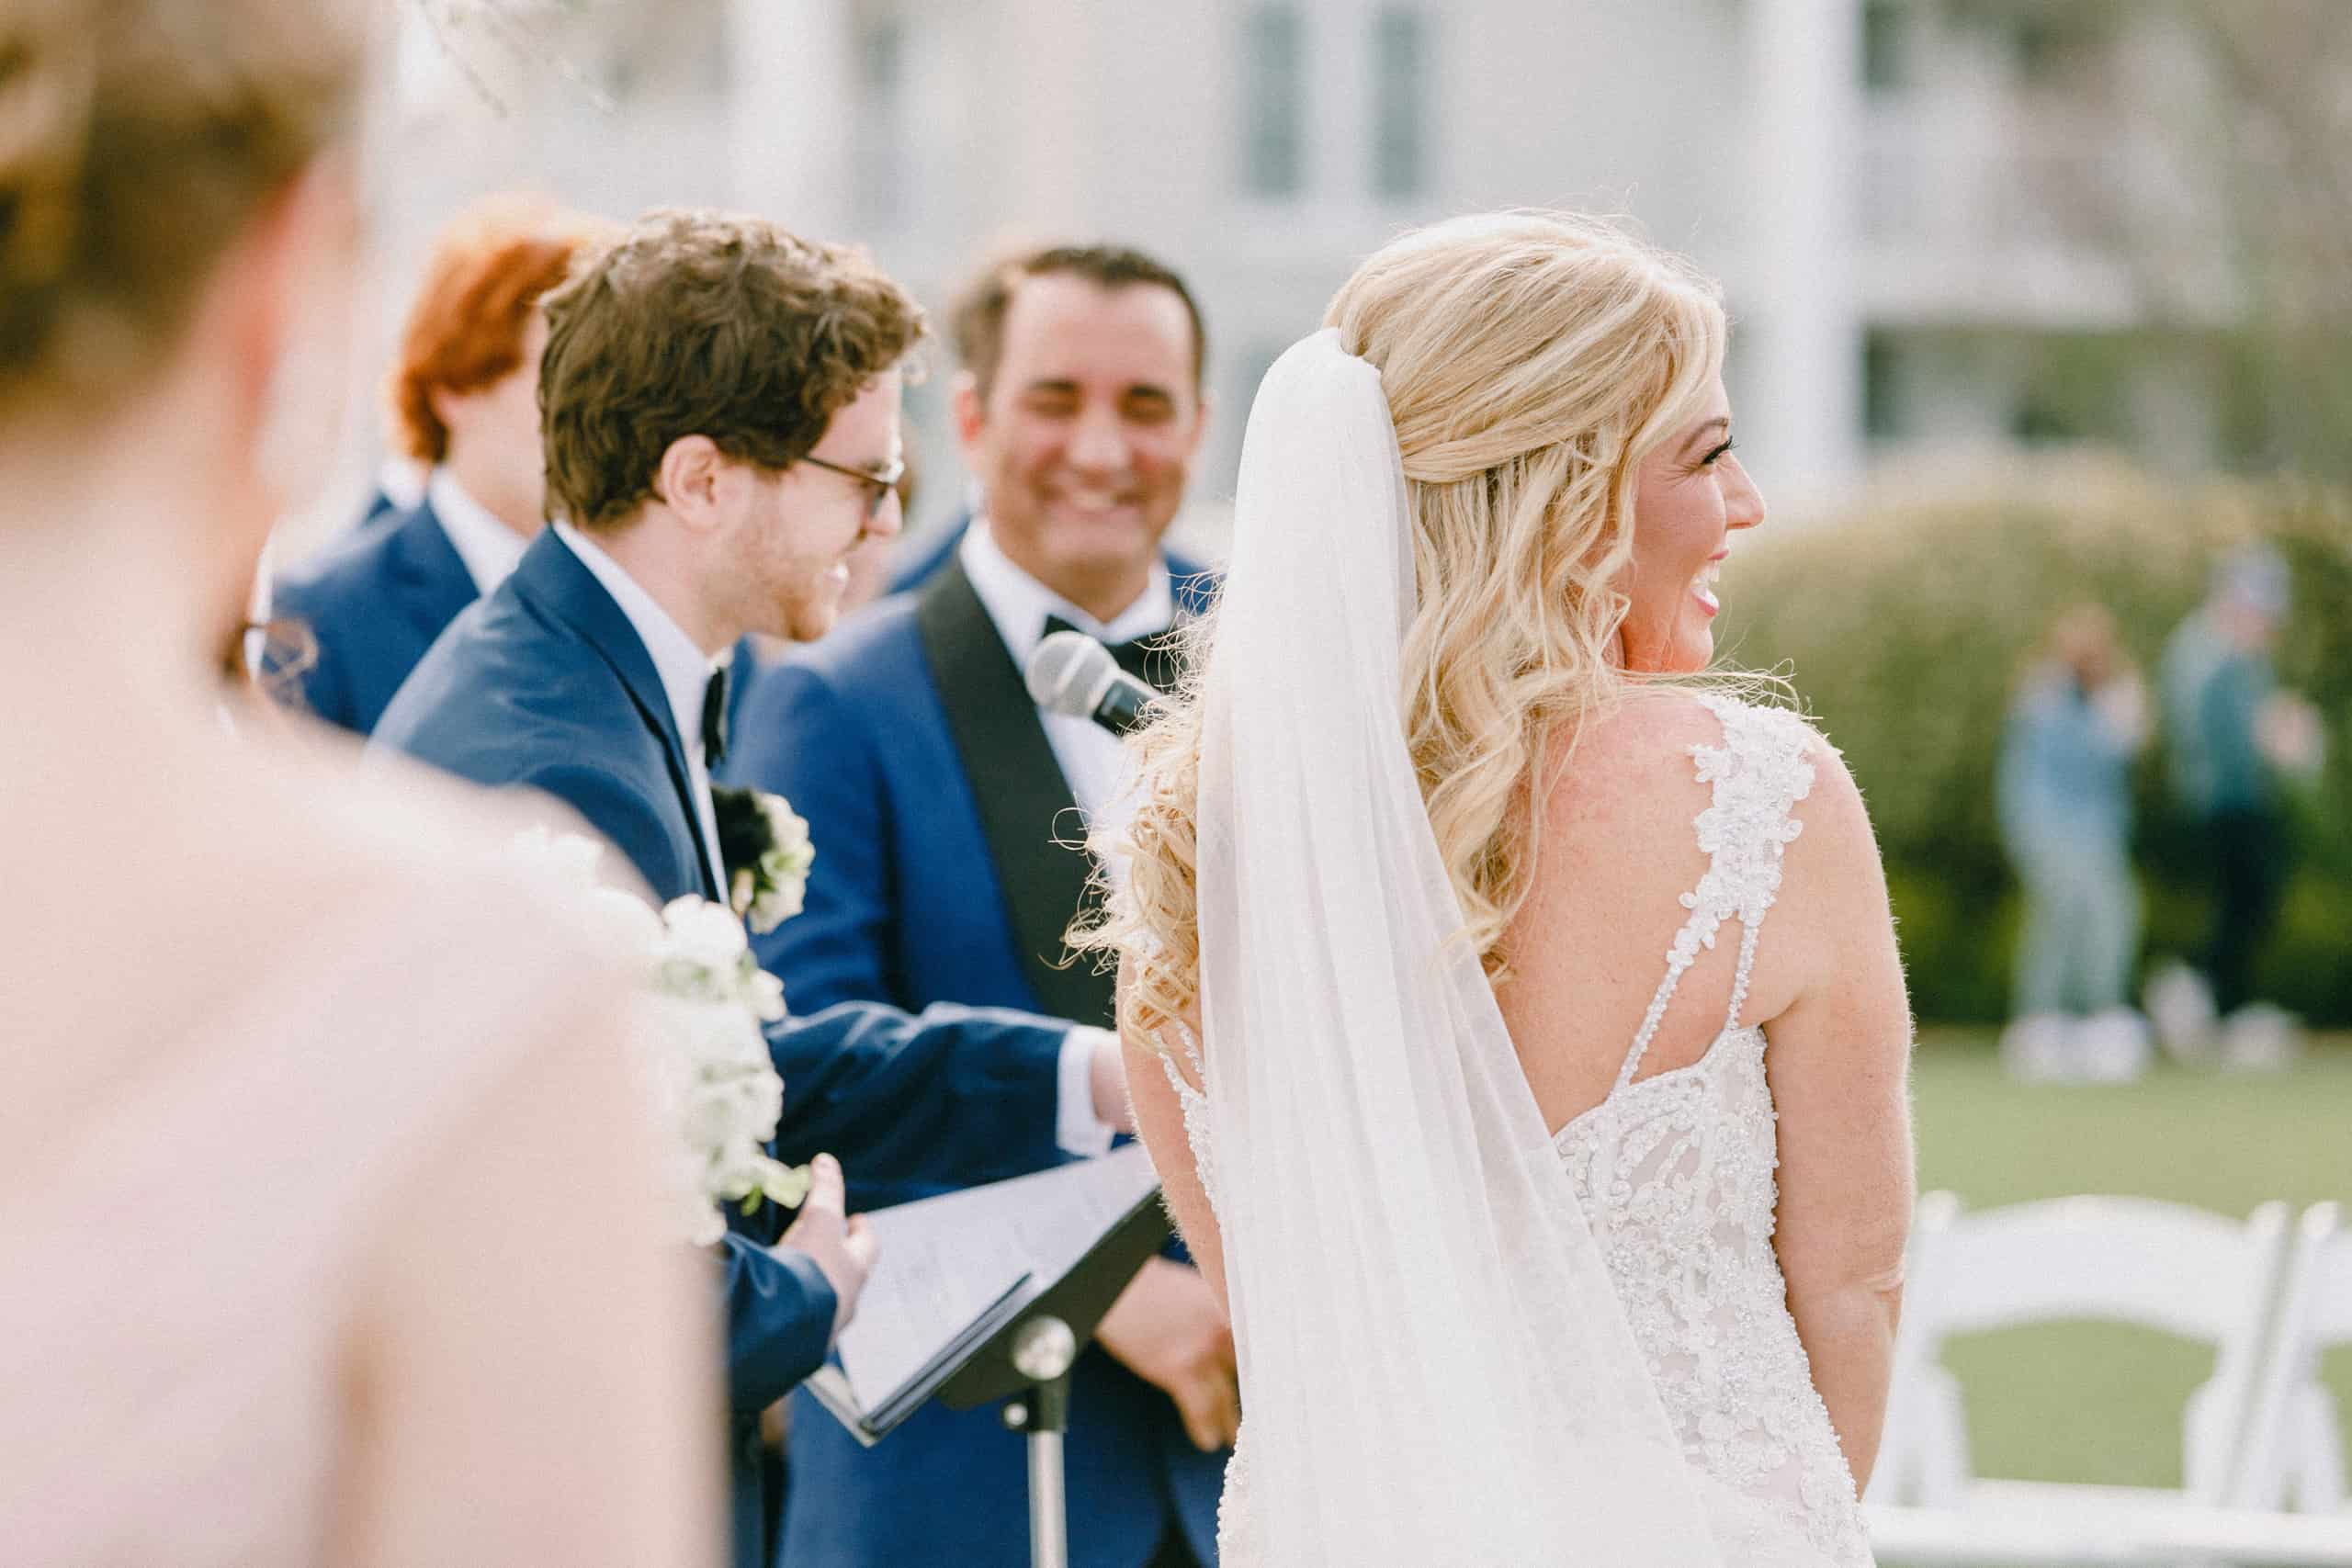 Wedding Ceremonies on the lawn at Congress Hall